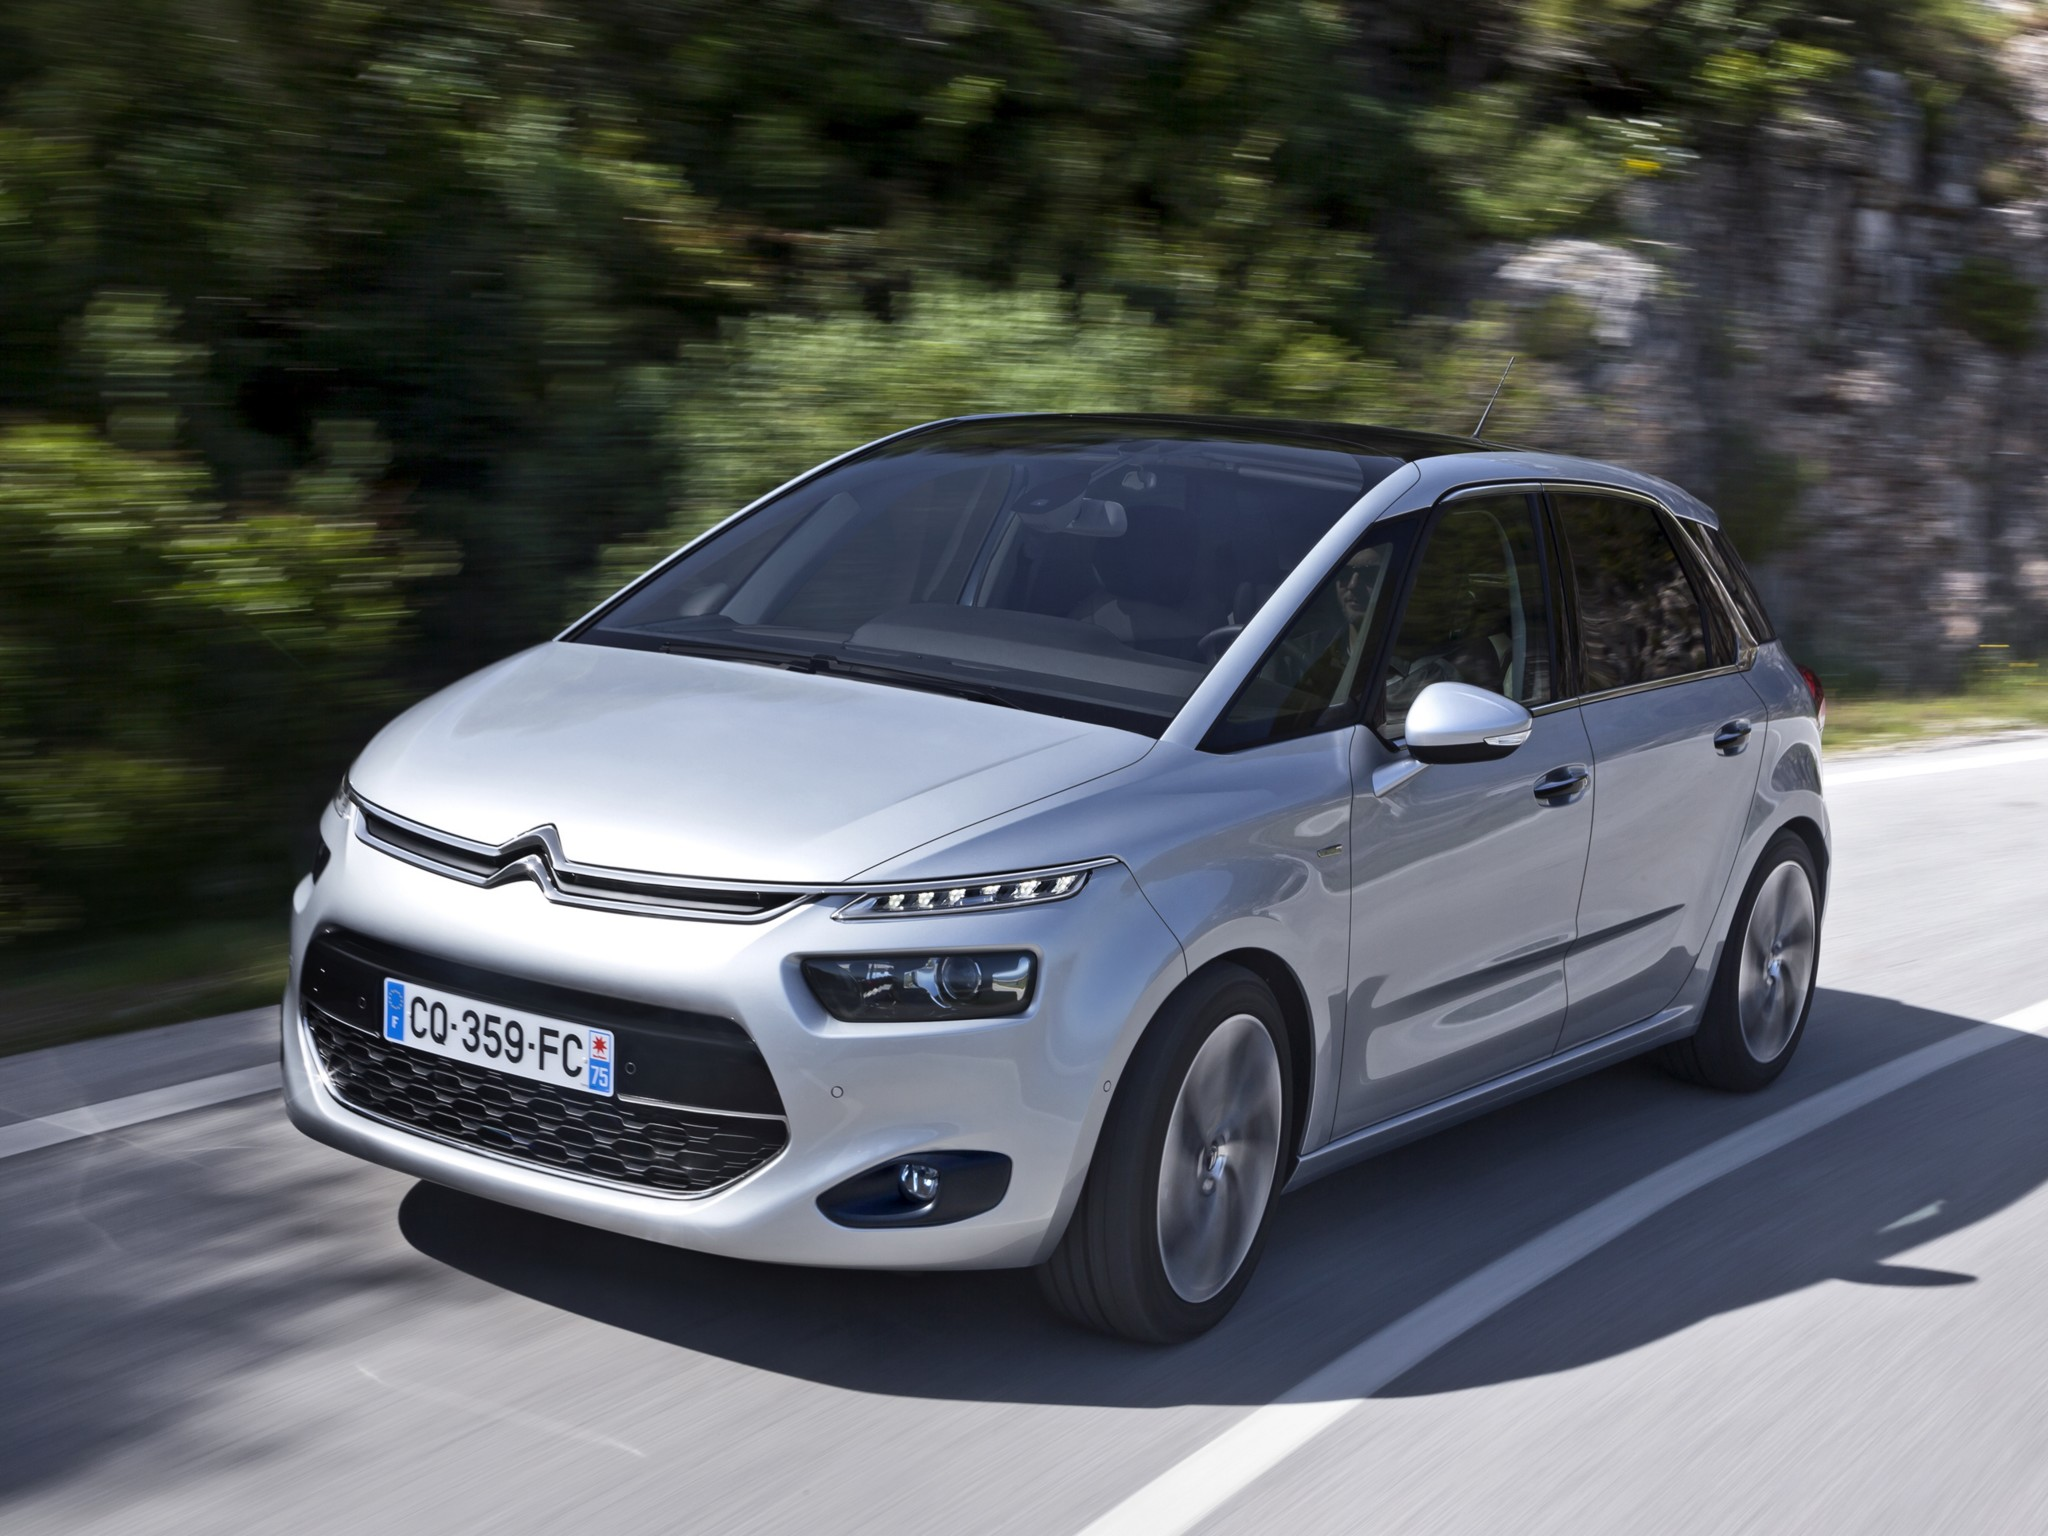 citroen c4 picasso specs 2013 2014 2015 2016 autoevolution. Black Bedroom Furniture Sets. Home Design Ideas